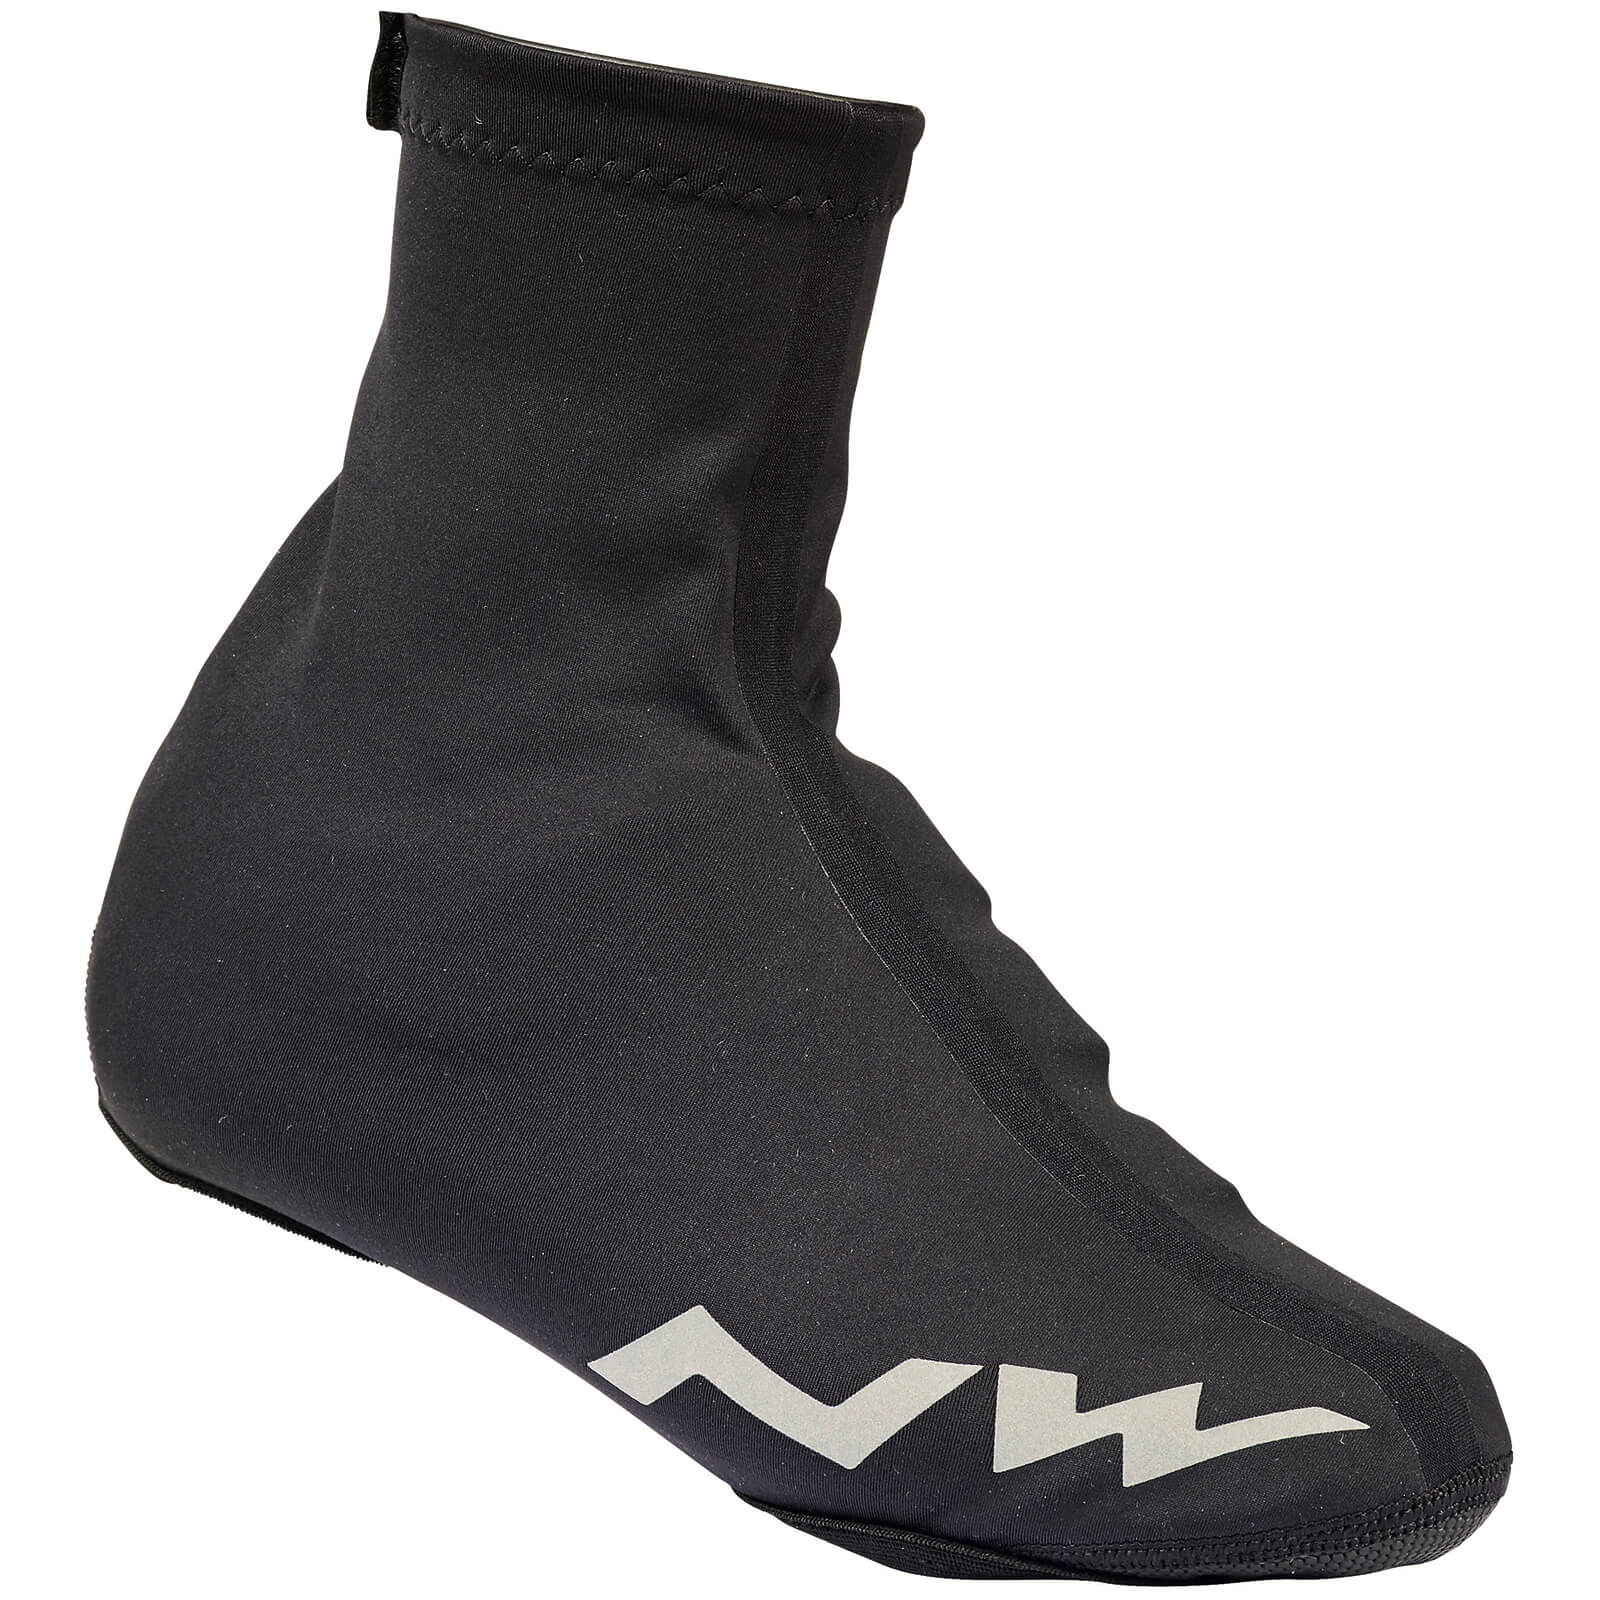 Northwave Fir Shoe Cover - Black